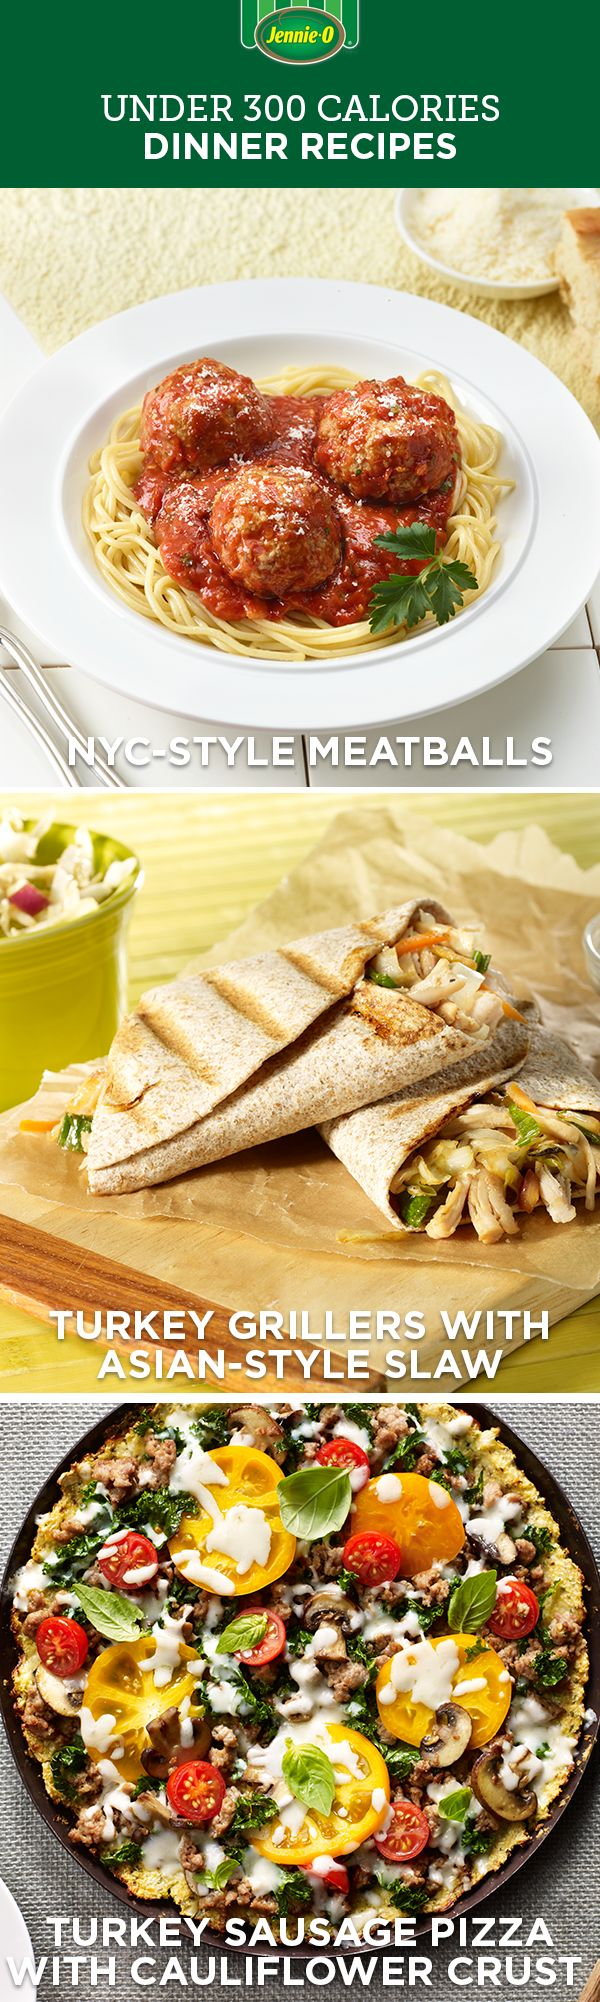 All the taste, none of the guilt. Find these under 300 calorie dishes and more on JennieO.com!